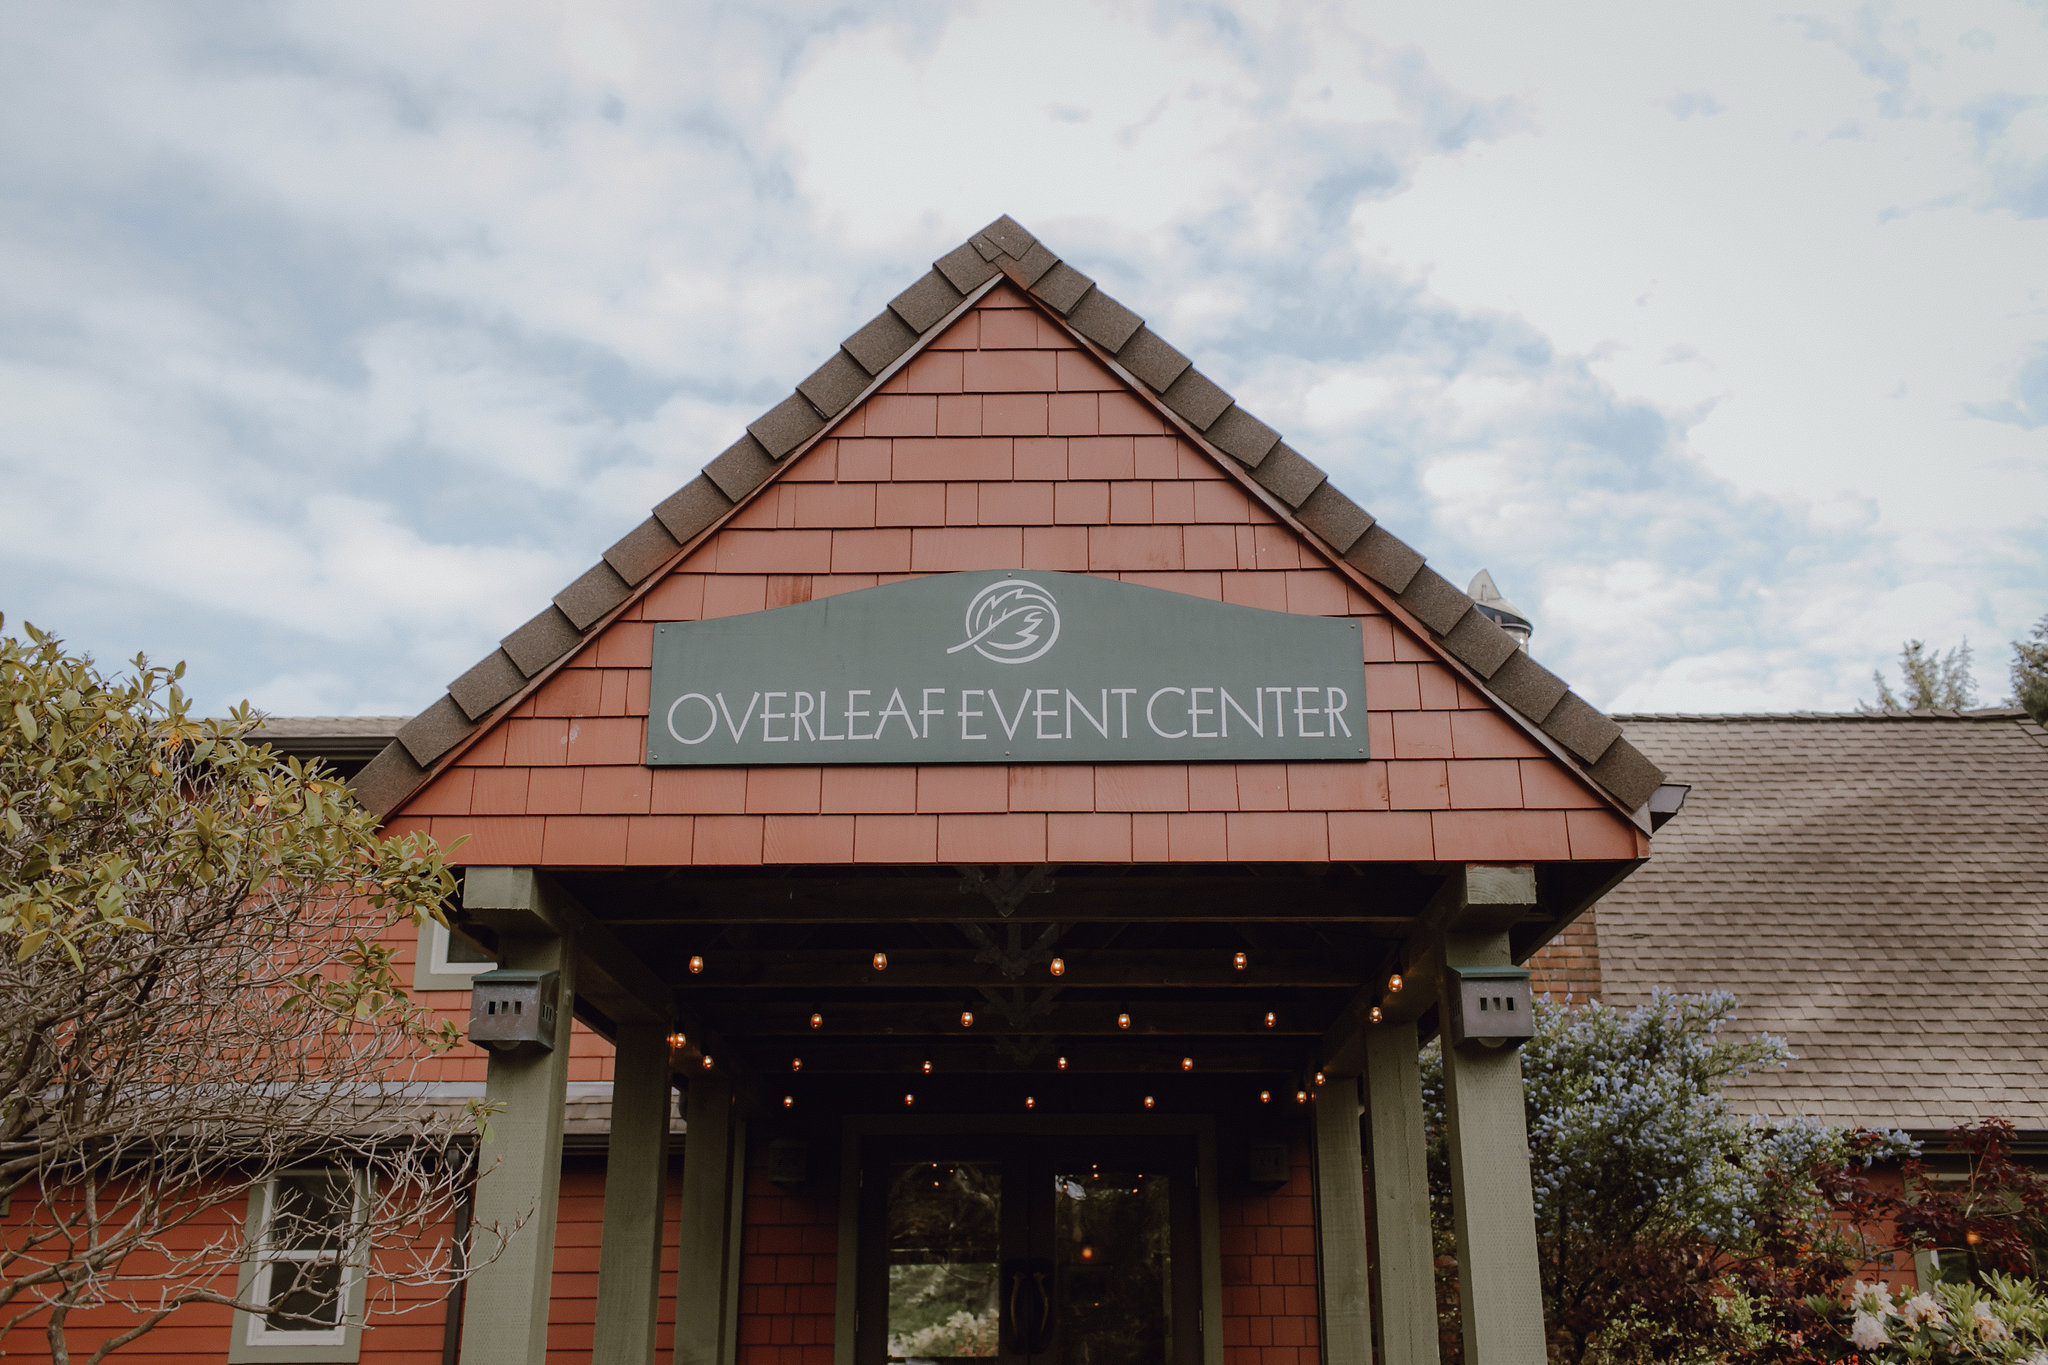 After the beautiful & heartfelt ceremony, guests walked over to the Overleaf Event Center where a three course dinner and dessert from Just Good Cookin